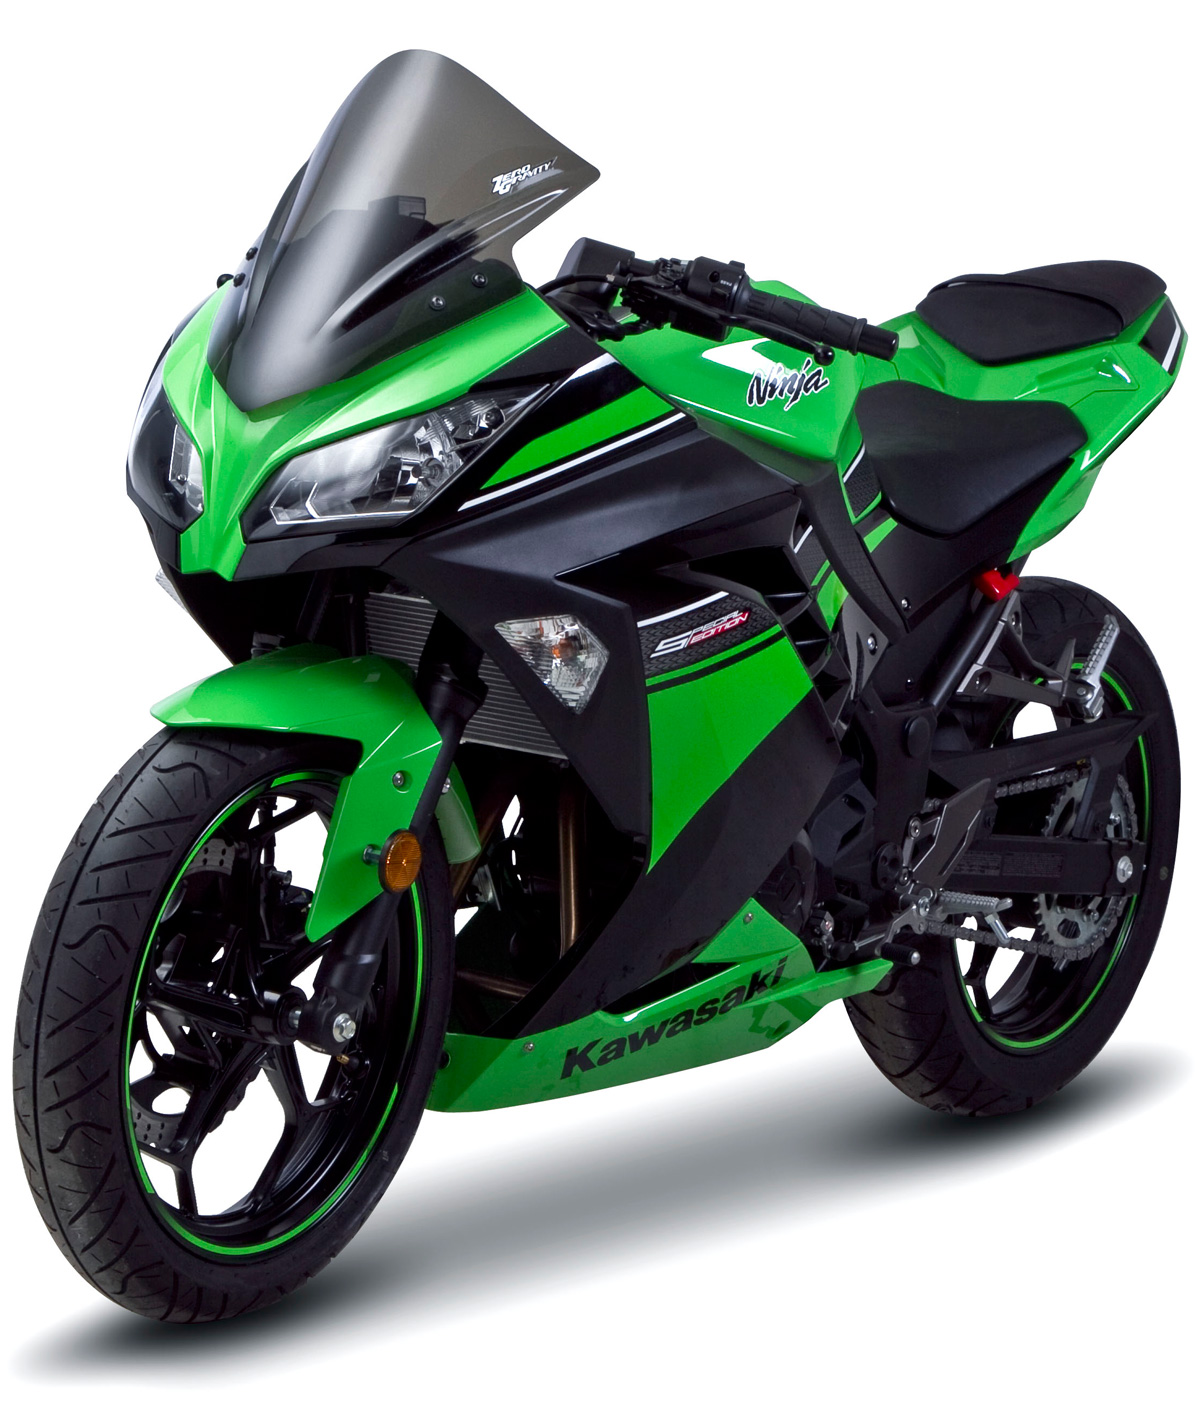 Kawasaki Ninja R For Sale Philippines